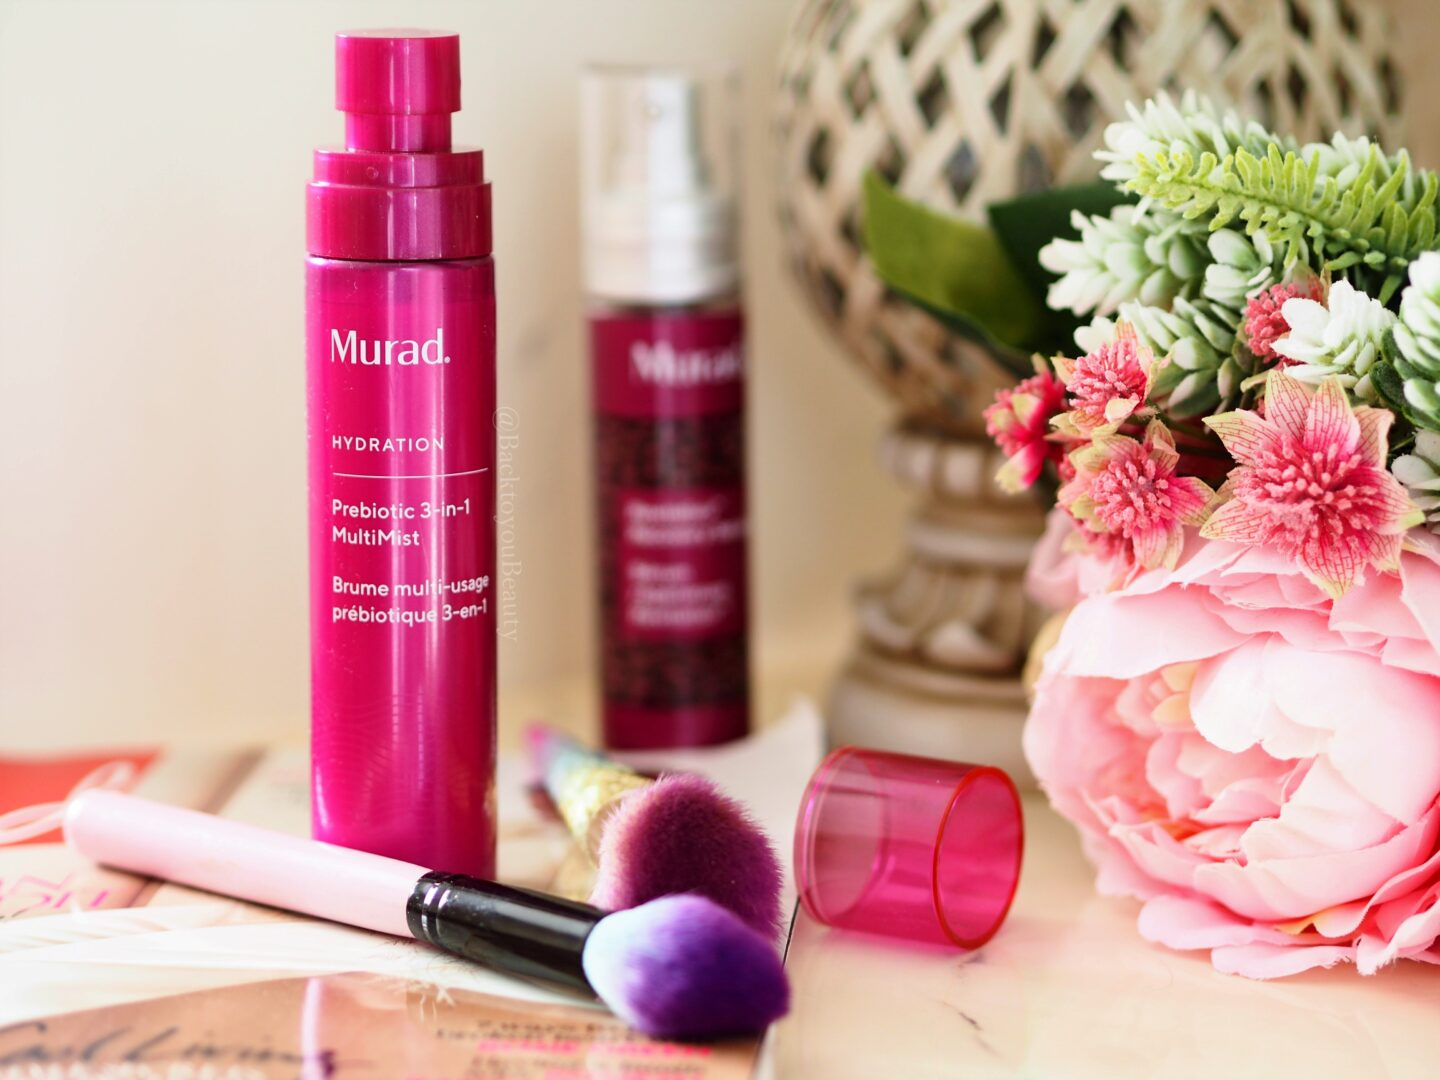 Murad Prebiotic multimist